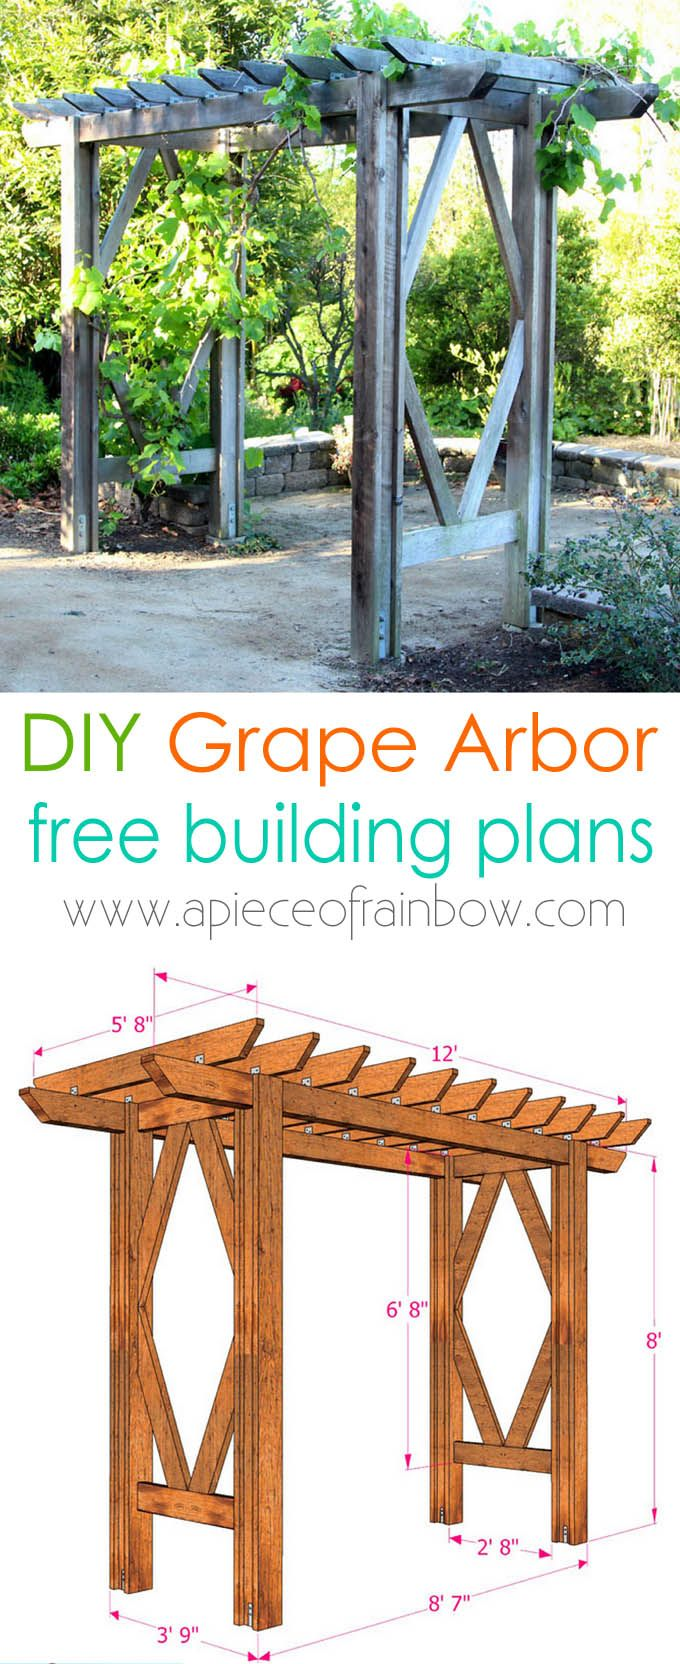 Simple Diy Pergola Grape Arbor Free Building Plan Diy Garden Trellis Diy Pergola Diy Arbour